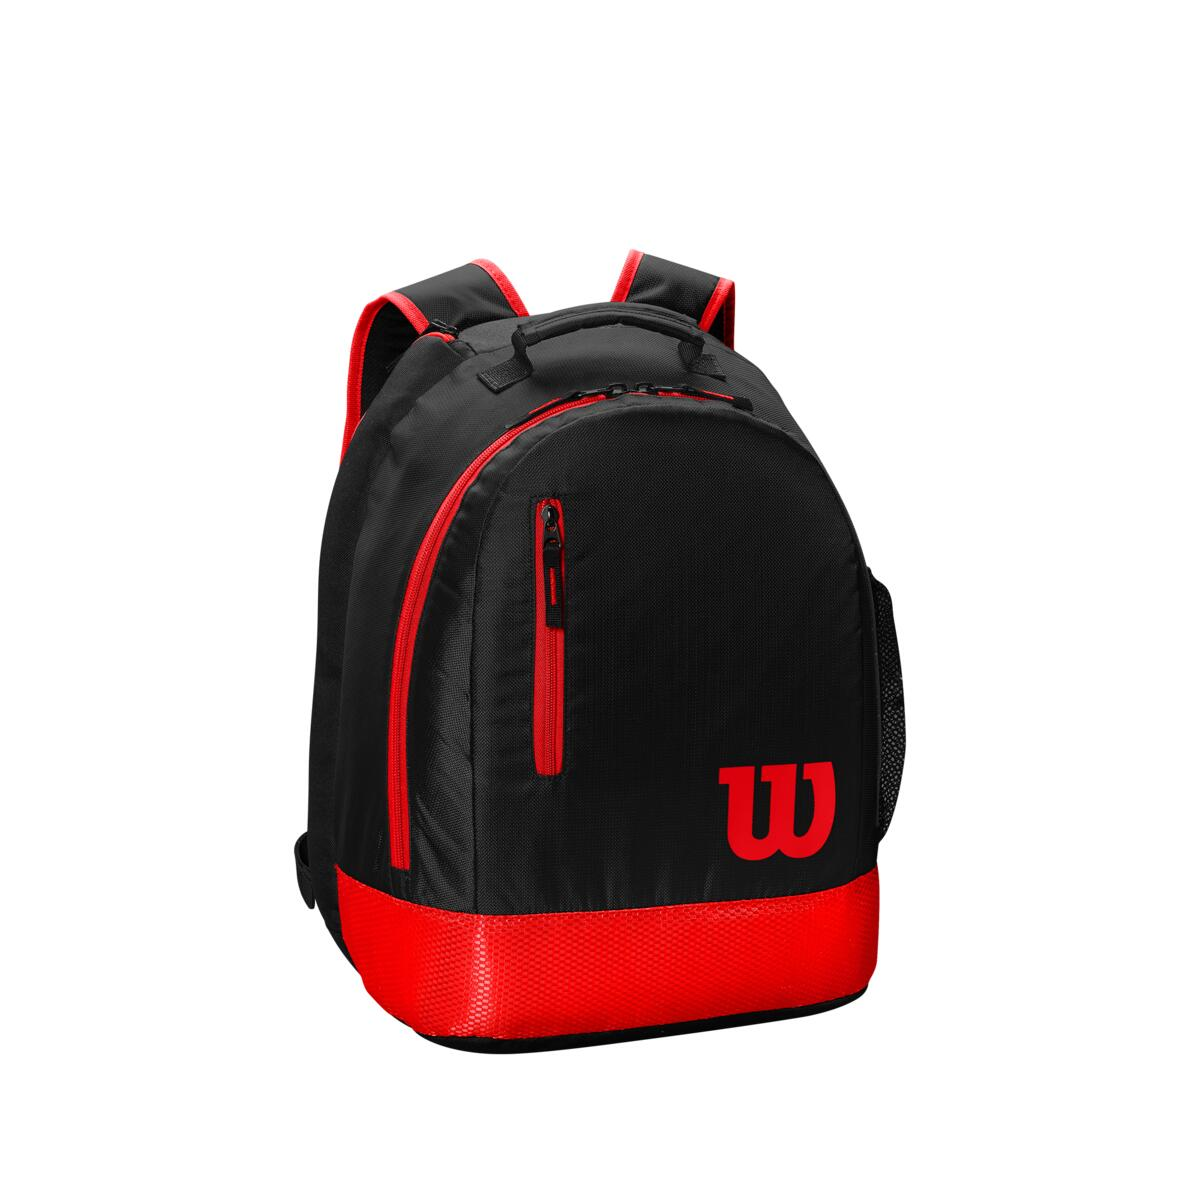 WR8000001_0_JUNIOR_BACKPACK_BL_BL_IR_Front.png.cq5dam.web.1200.1200